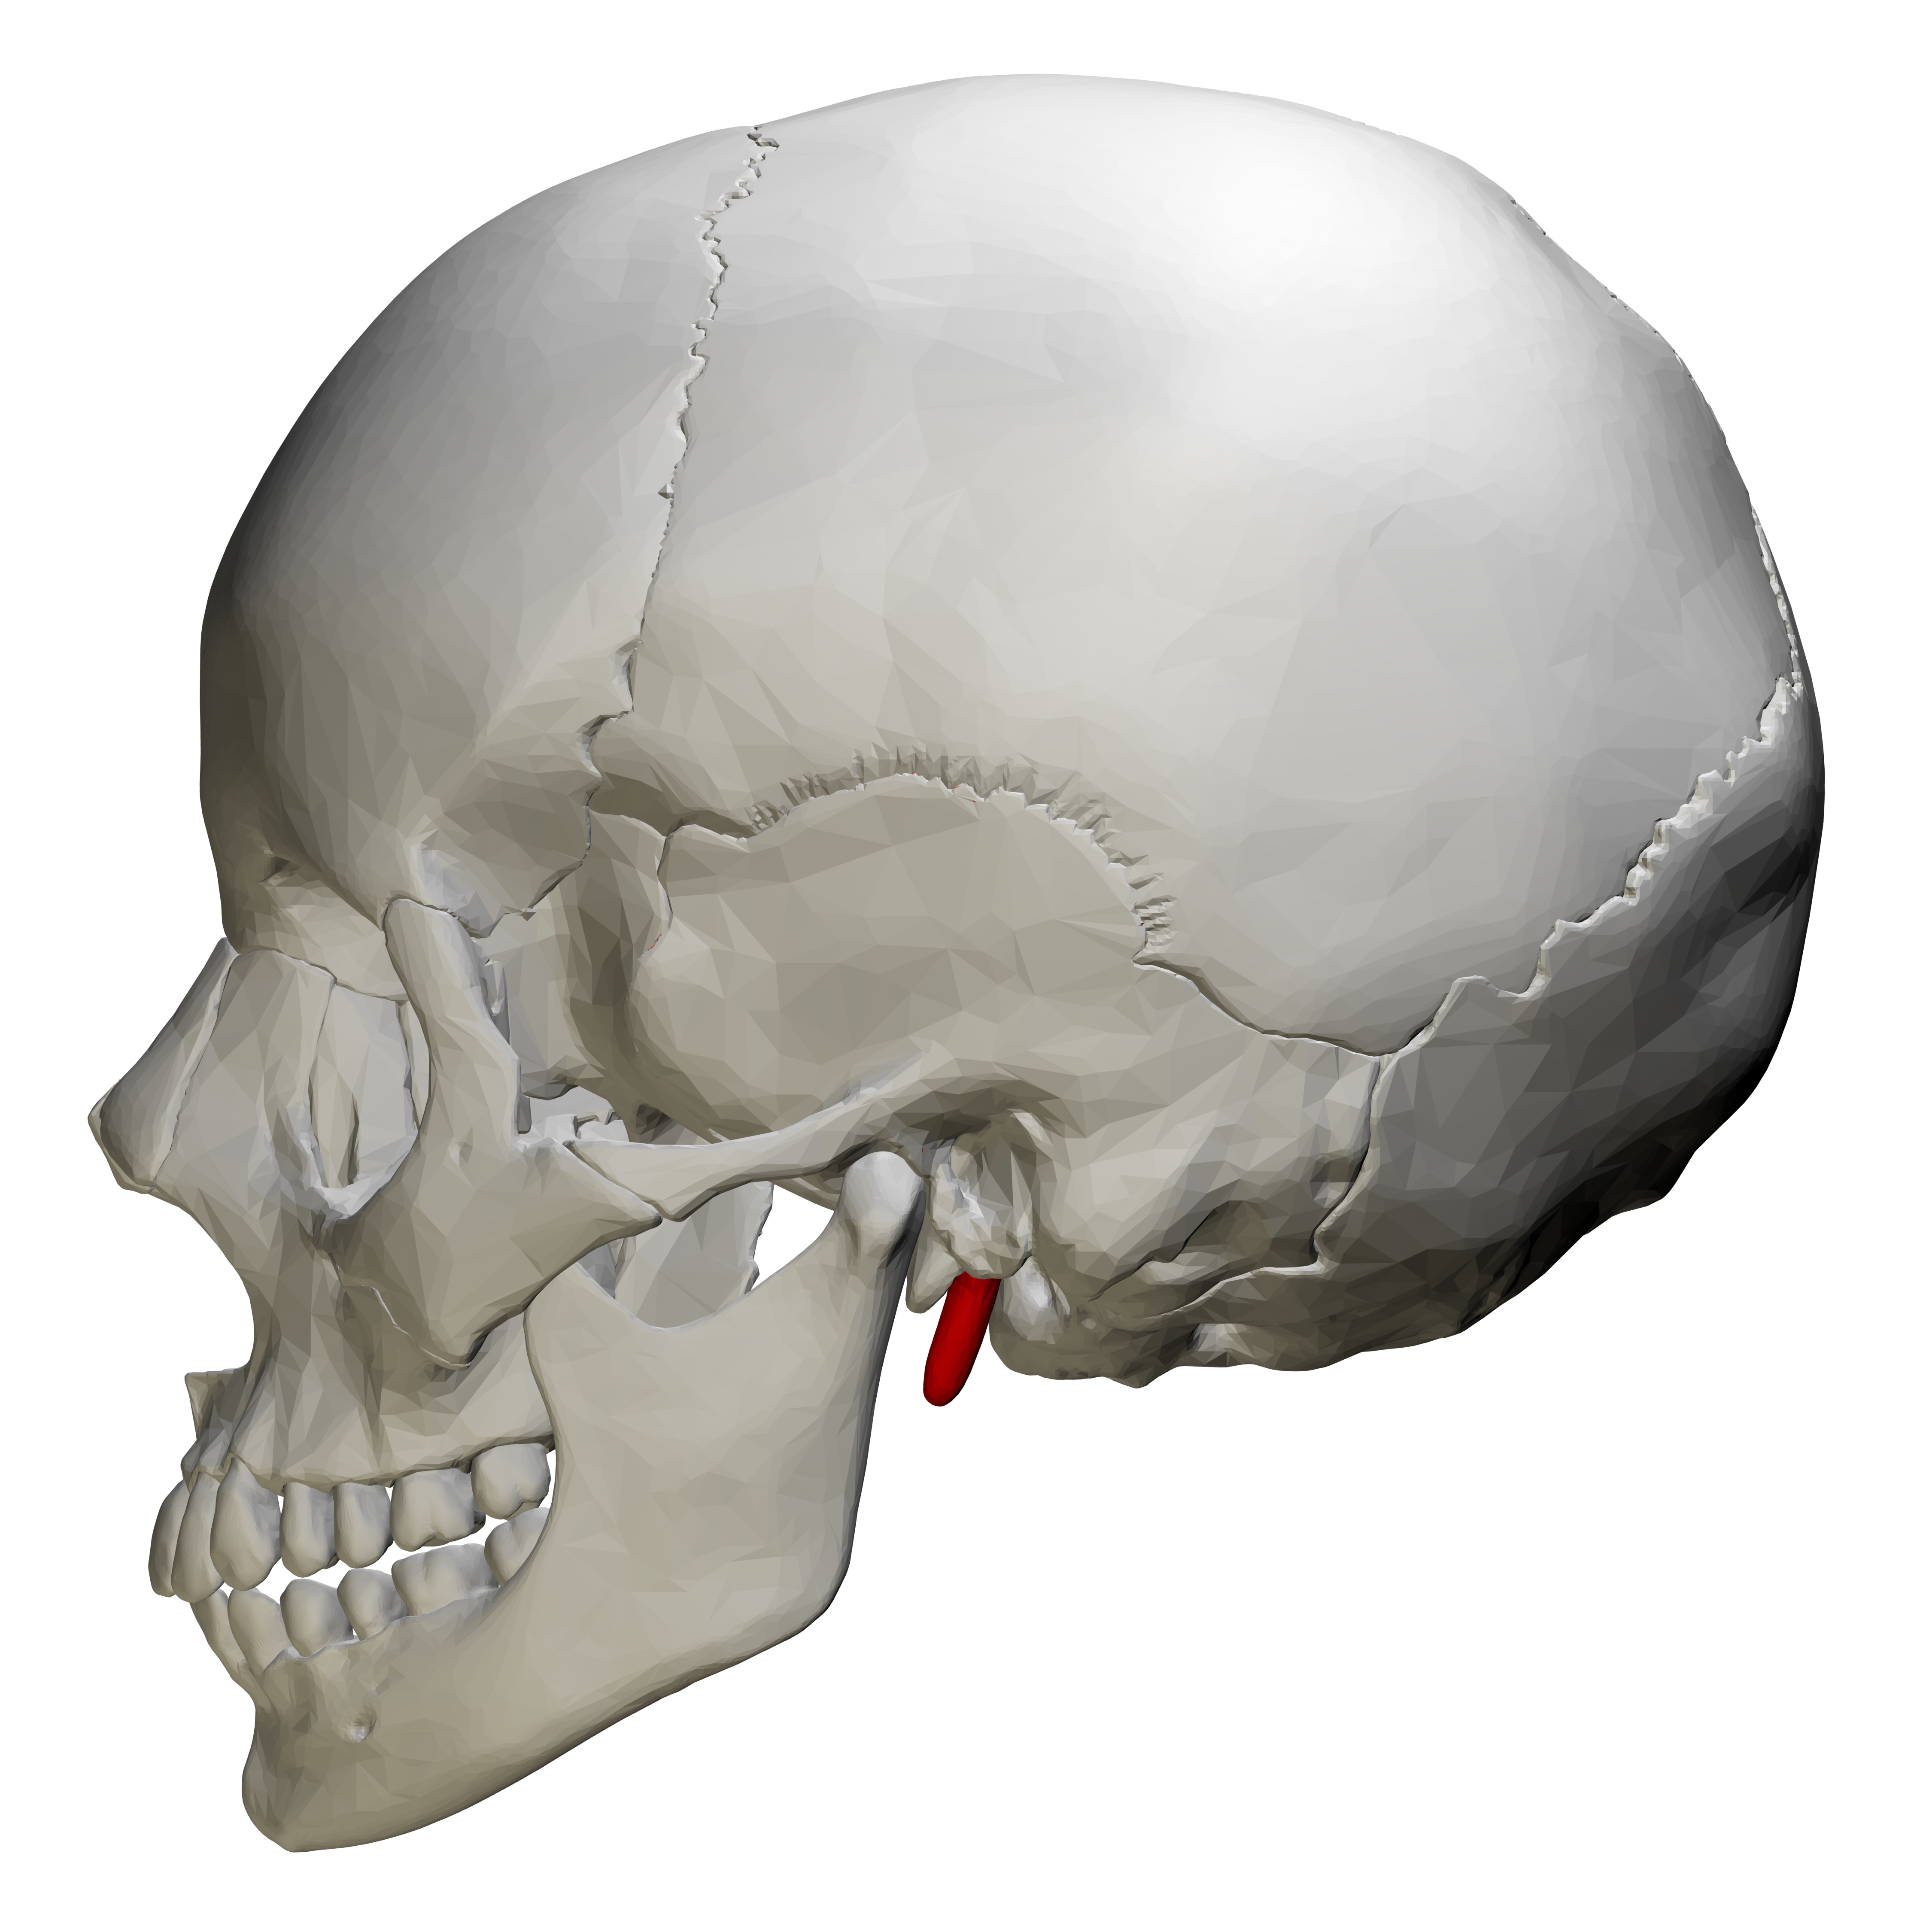 File:Styloid process of temporal bone - lateral view01.png Temporal Bone